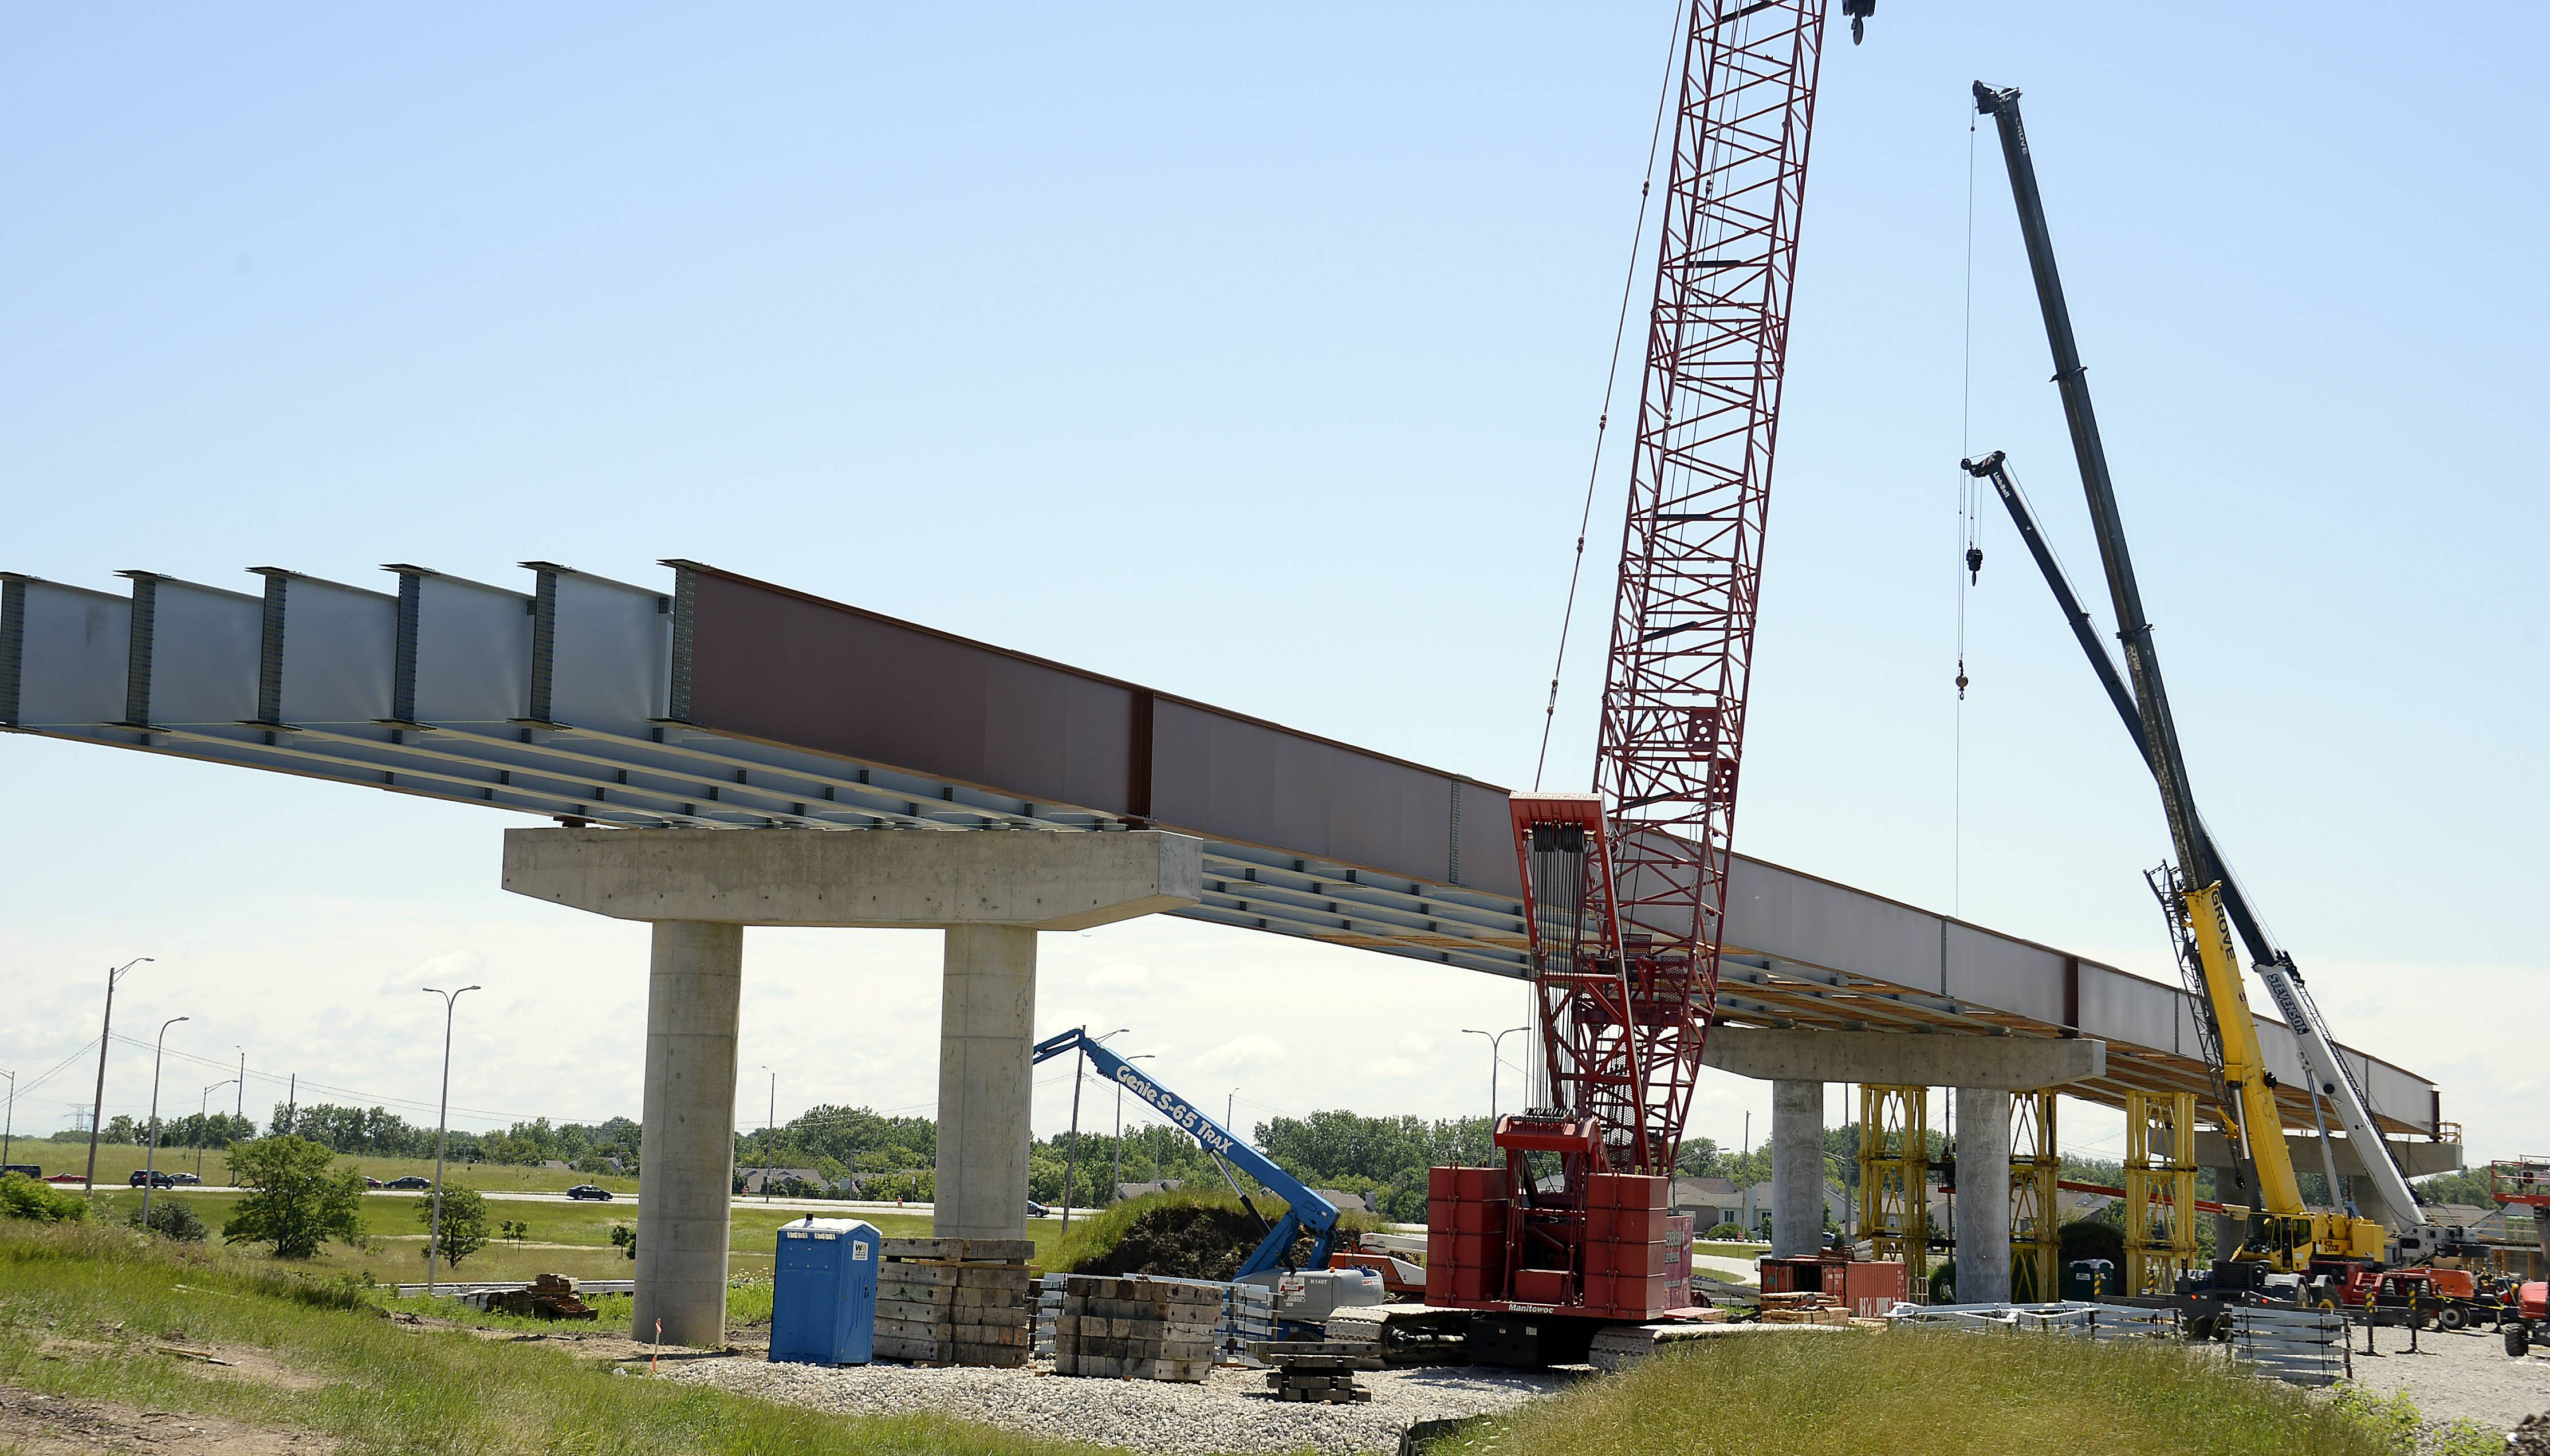 Mark Welsh/mwelsh@dailyherald.com/July 2014 Construction of new tollway ramps at I-290 and the Elgin-O'Hare Expressway has been a diversion for drivers for more than a year. Three of the ramps will open to drivers this weekend.